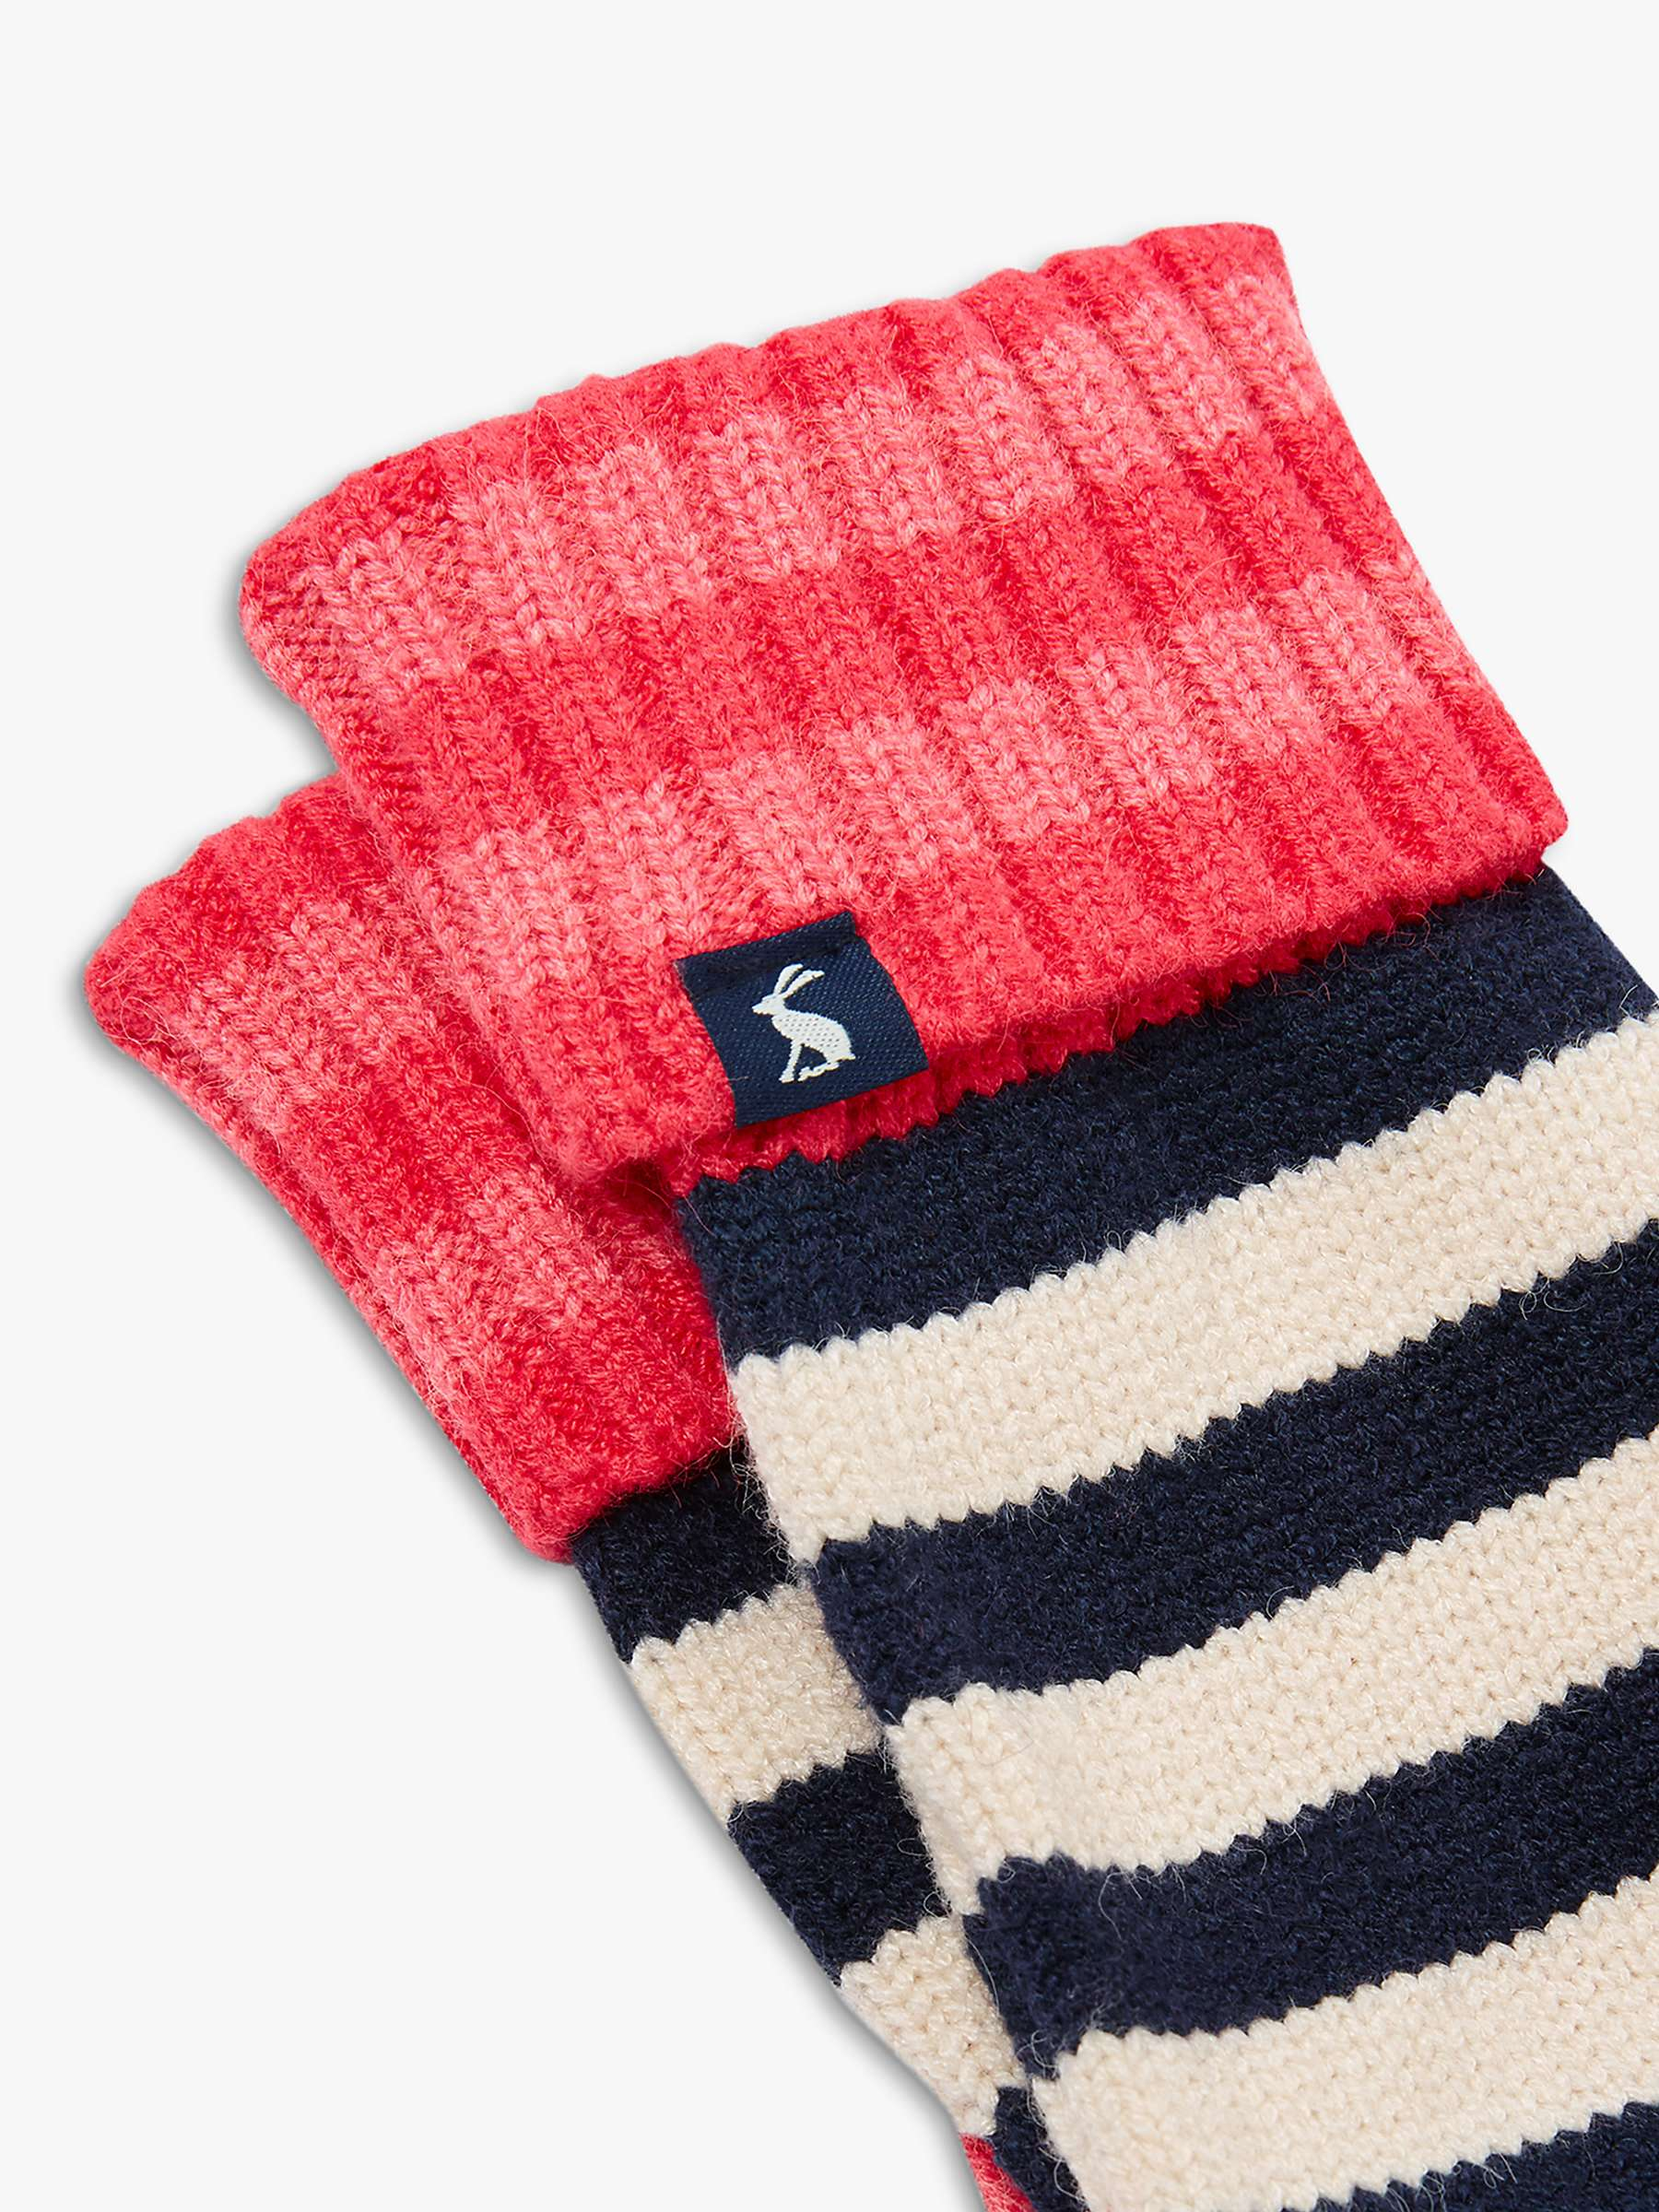 PINK MULTI STRIPE in One Size Joules Womens Chillaway Stripe Knitted Scarf